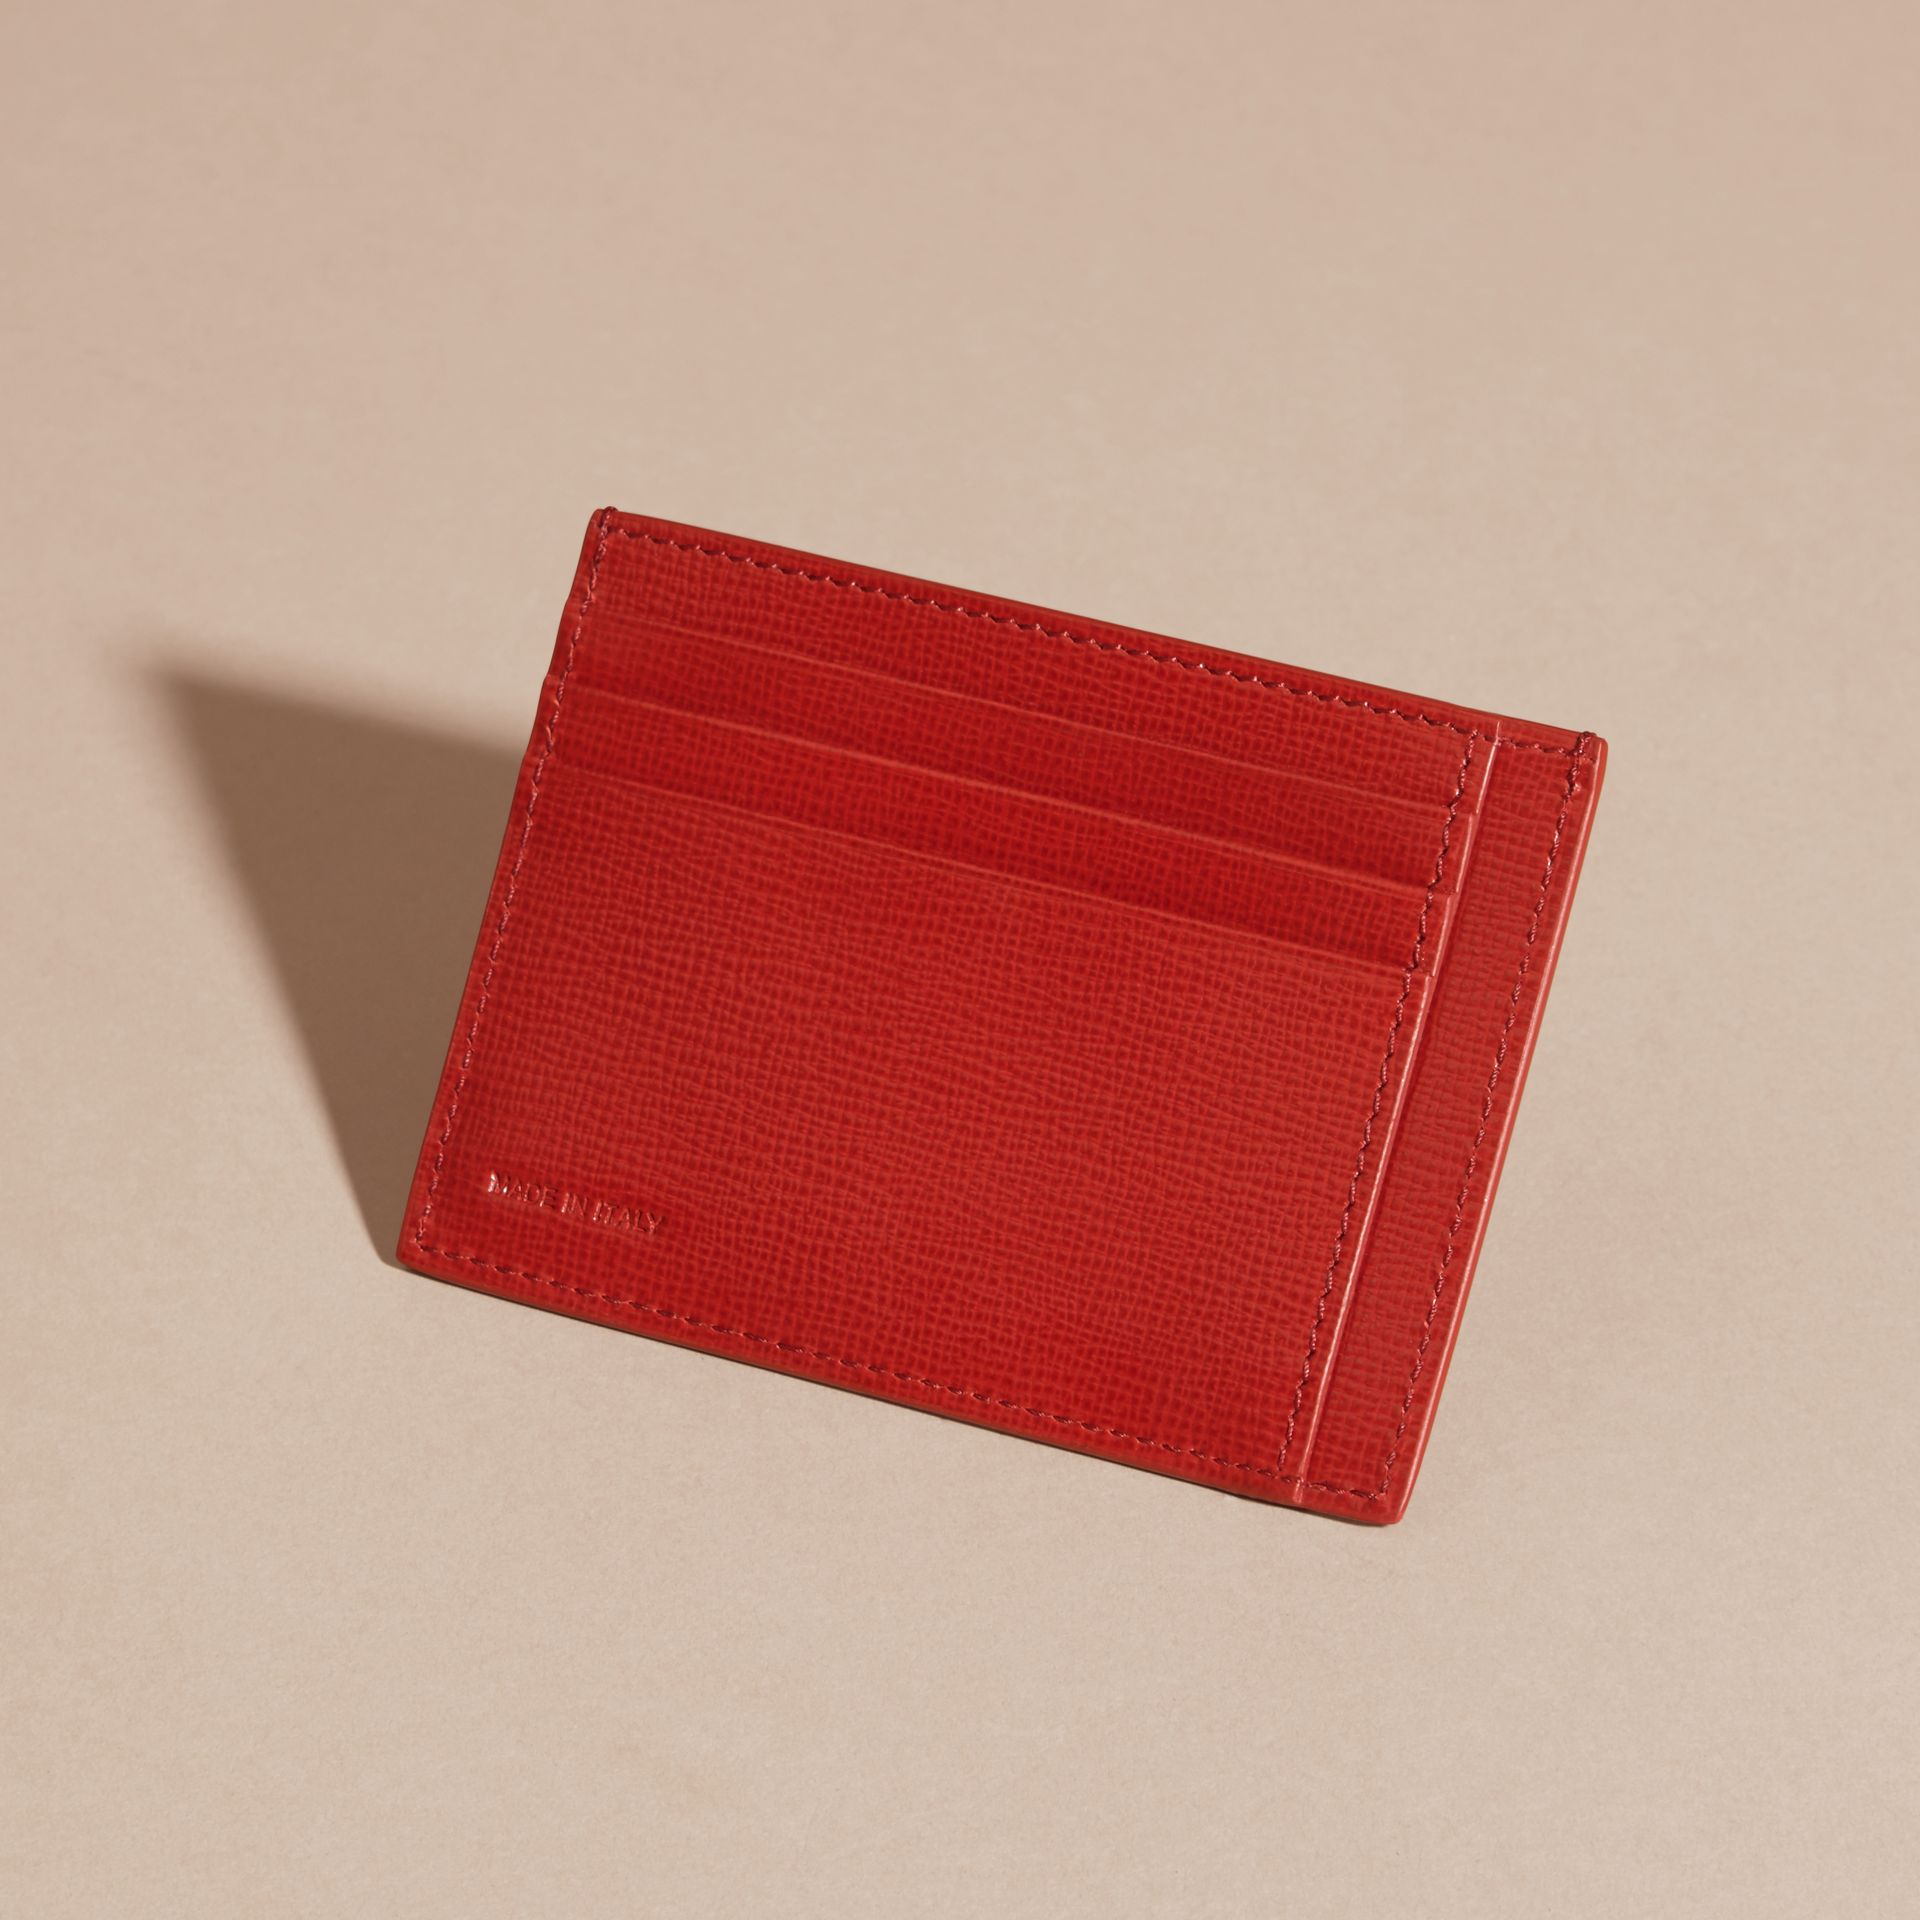 Dark military red London Leather Card Case Dark Military Red - gallery image 3